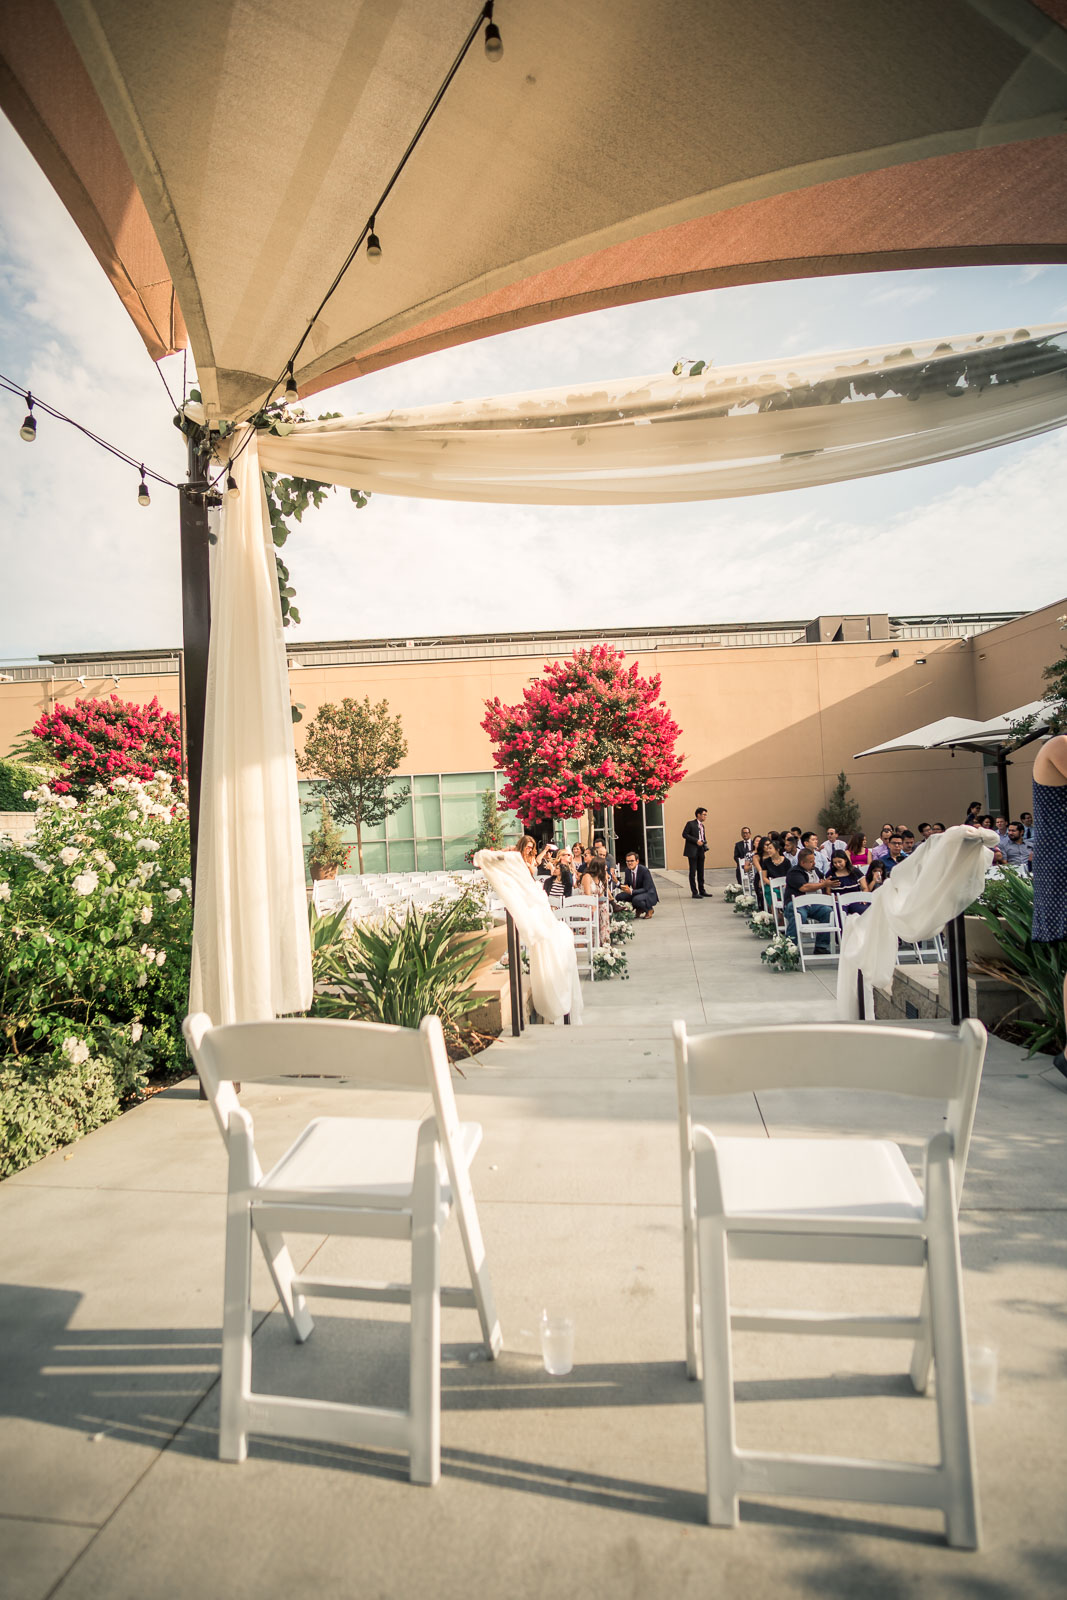 115_Angel-Brea-Orange-County_Joseph-Barber-Wedding-Photography.jpg